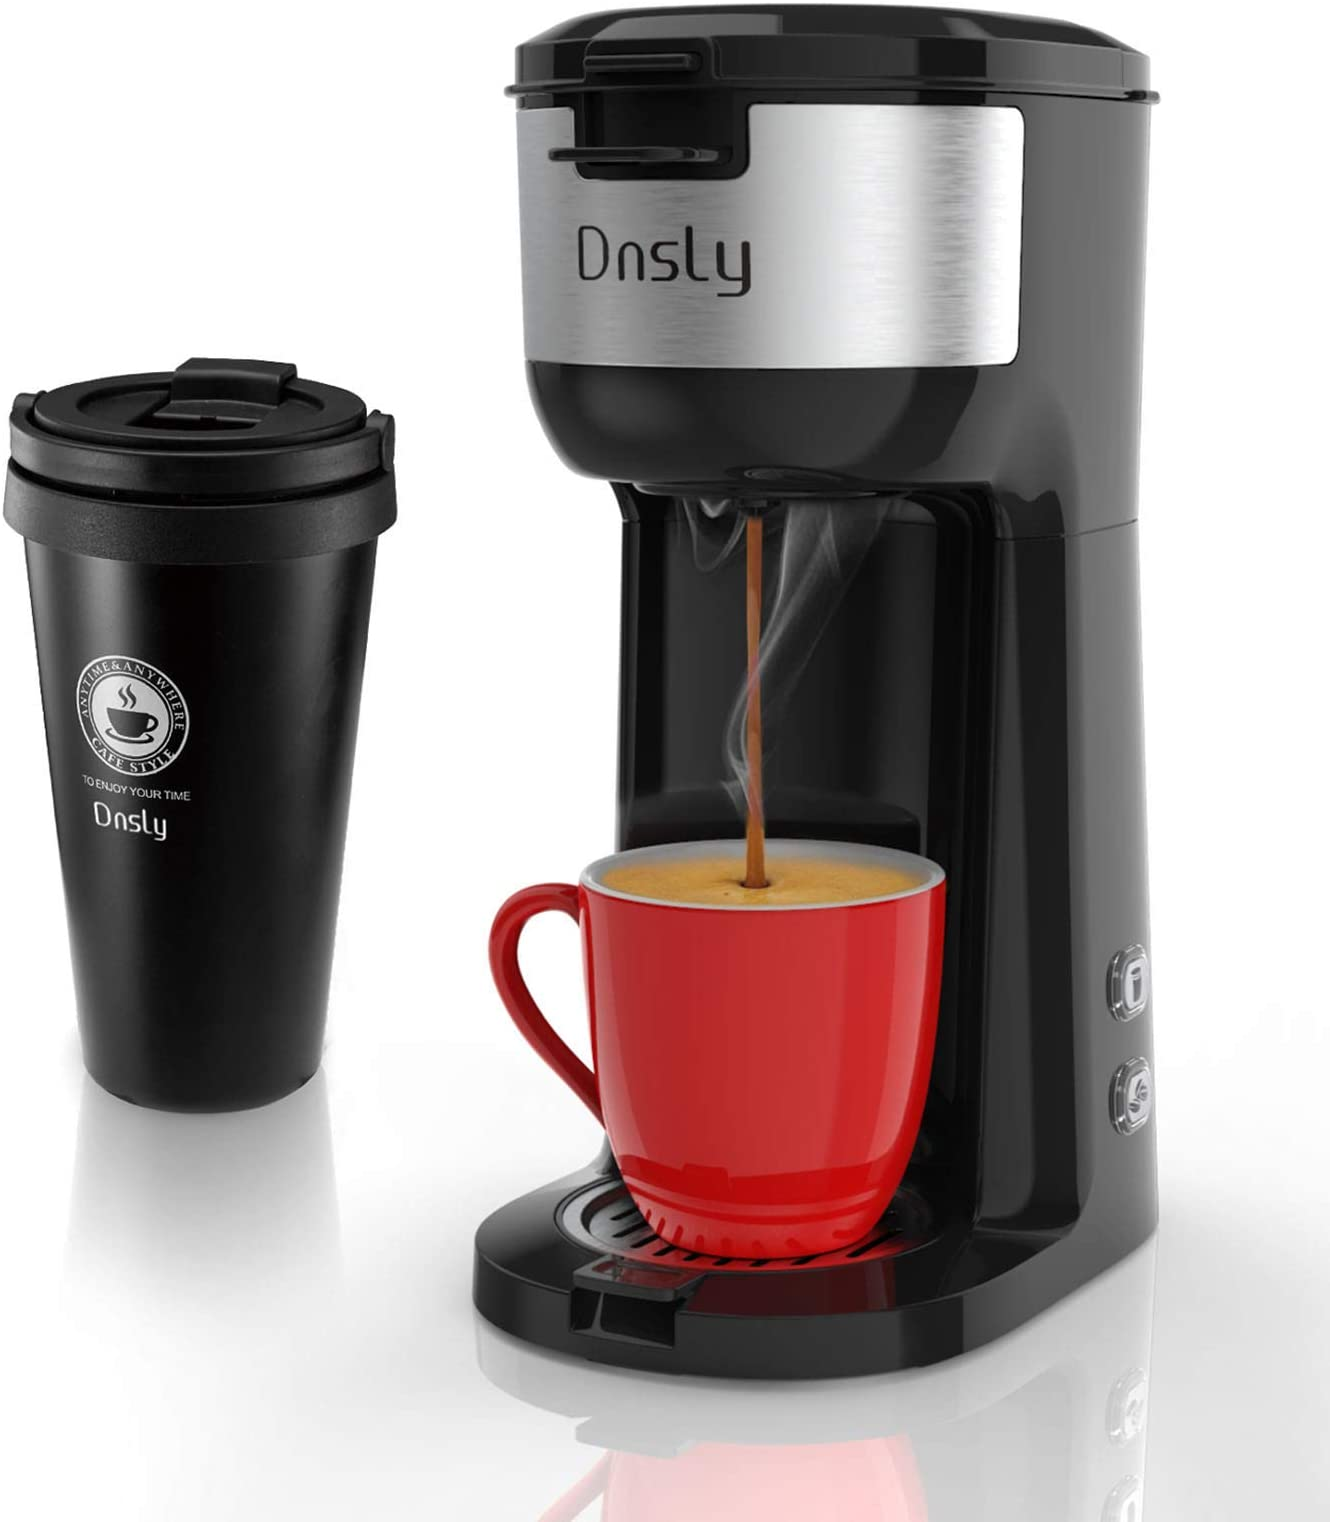 Dnsly Single Serve Coffee Maker attached Travel Mug, 2 in 1 Capsule Pod & Ground Coffee, With BPA Free, Strength Controlled from 6oz to 14oz and Self Cleaning Function